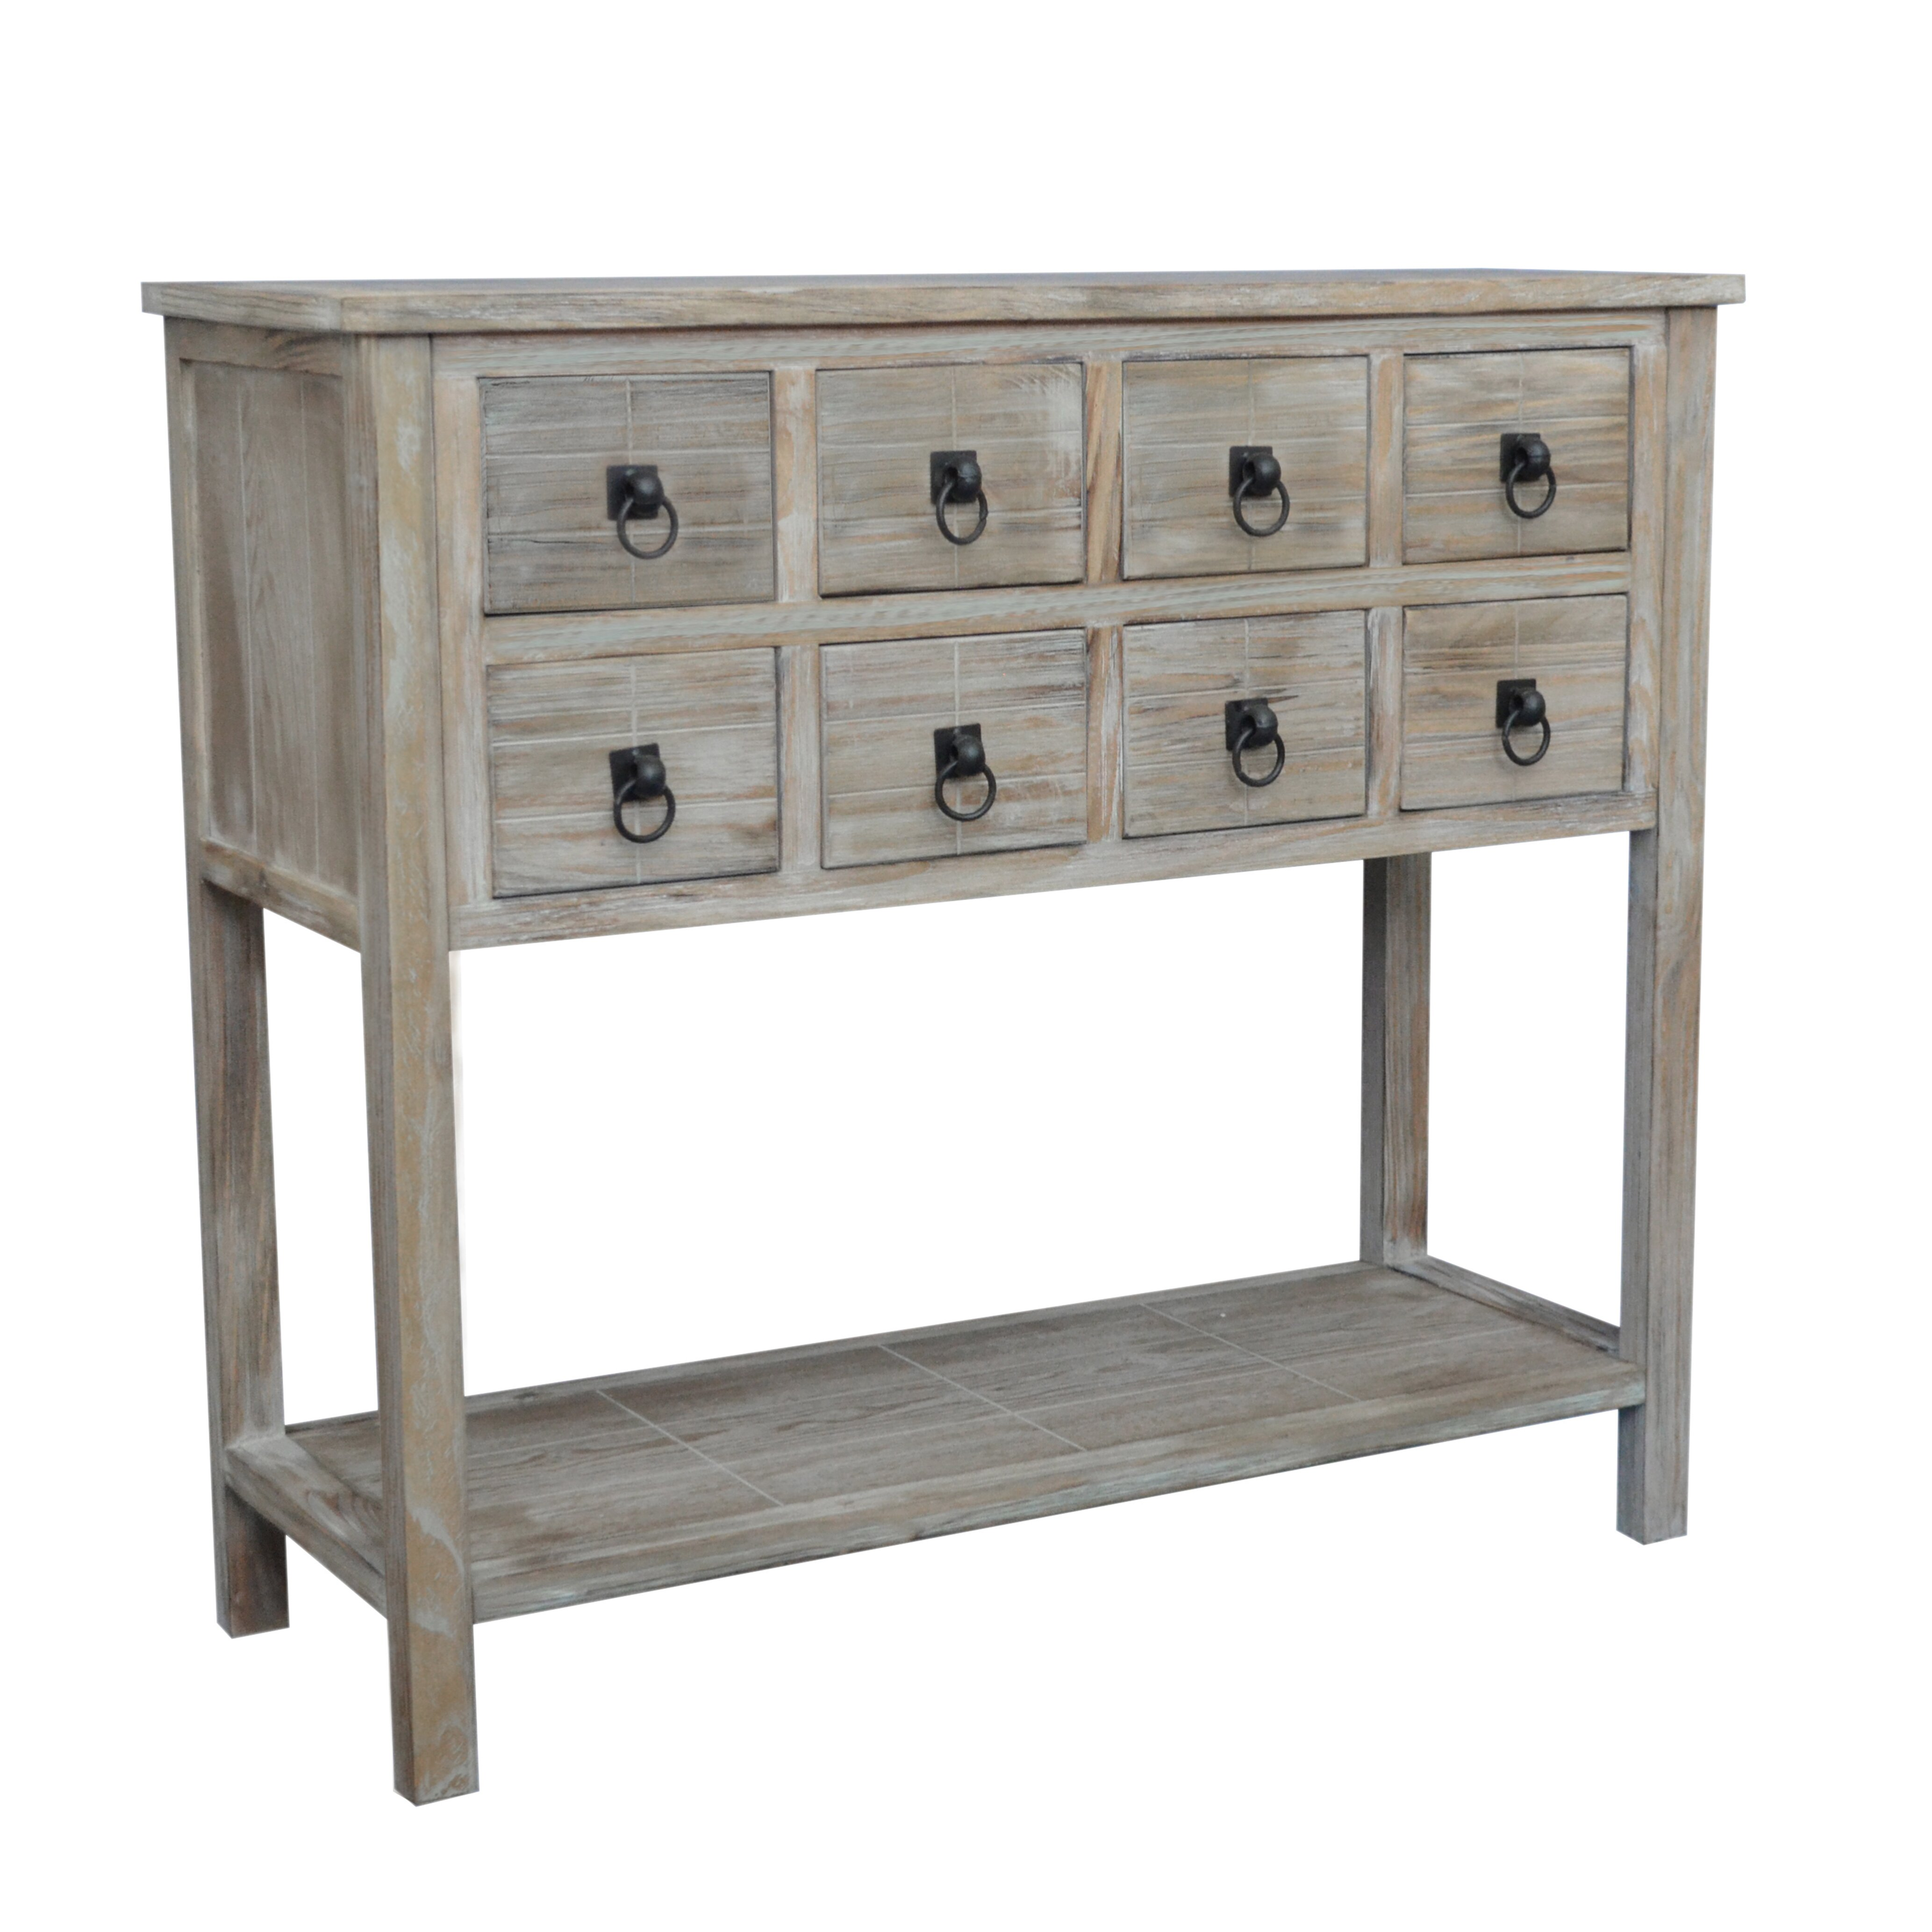 Gallerie Decor Driftwood Console Table & Reviews